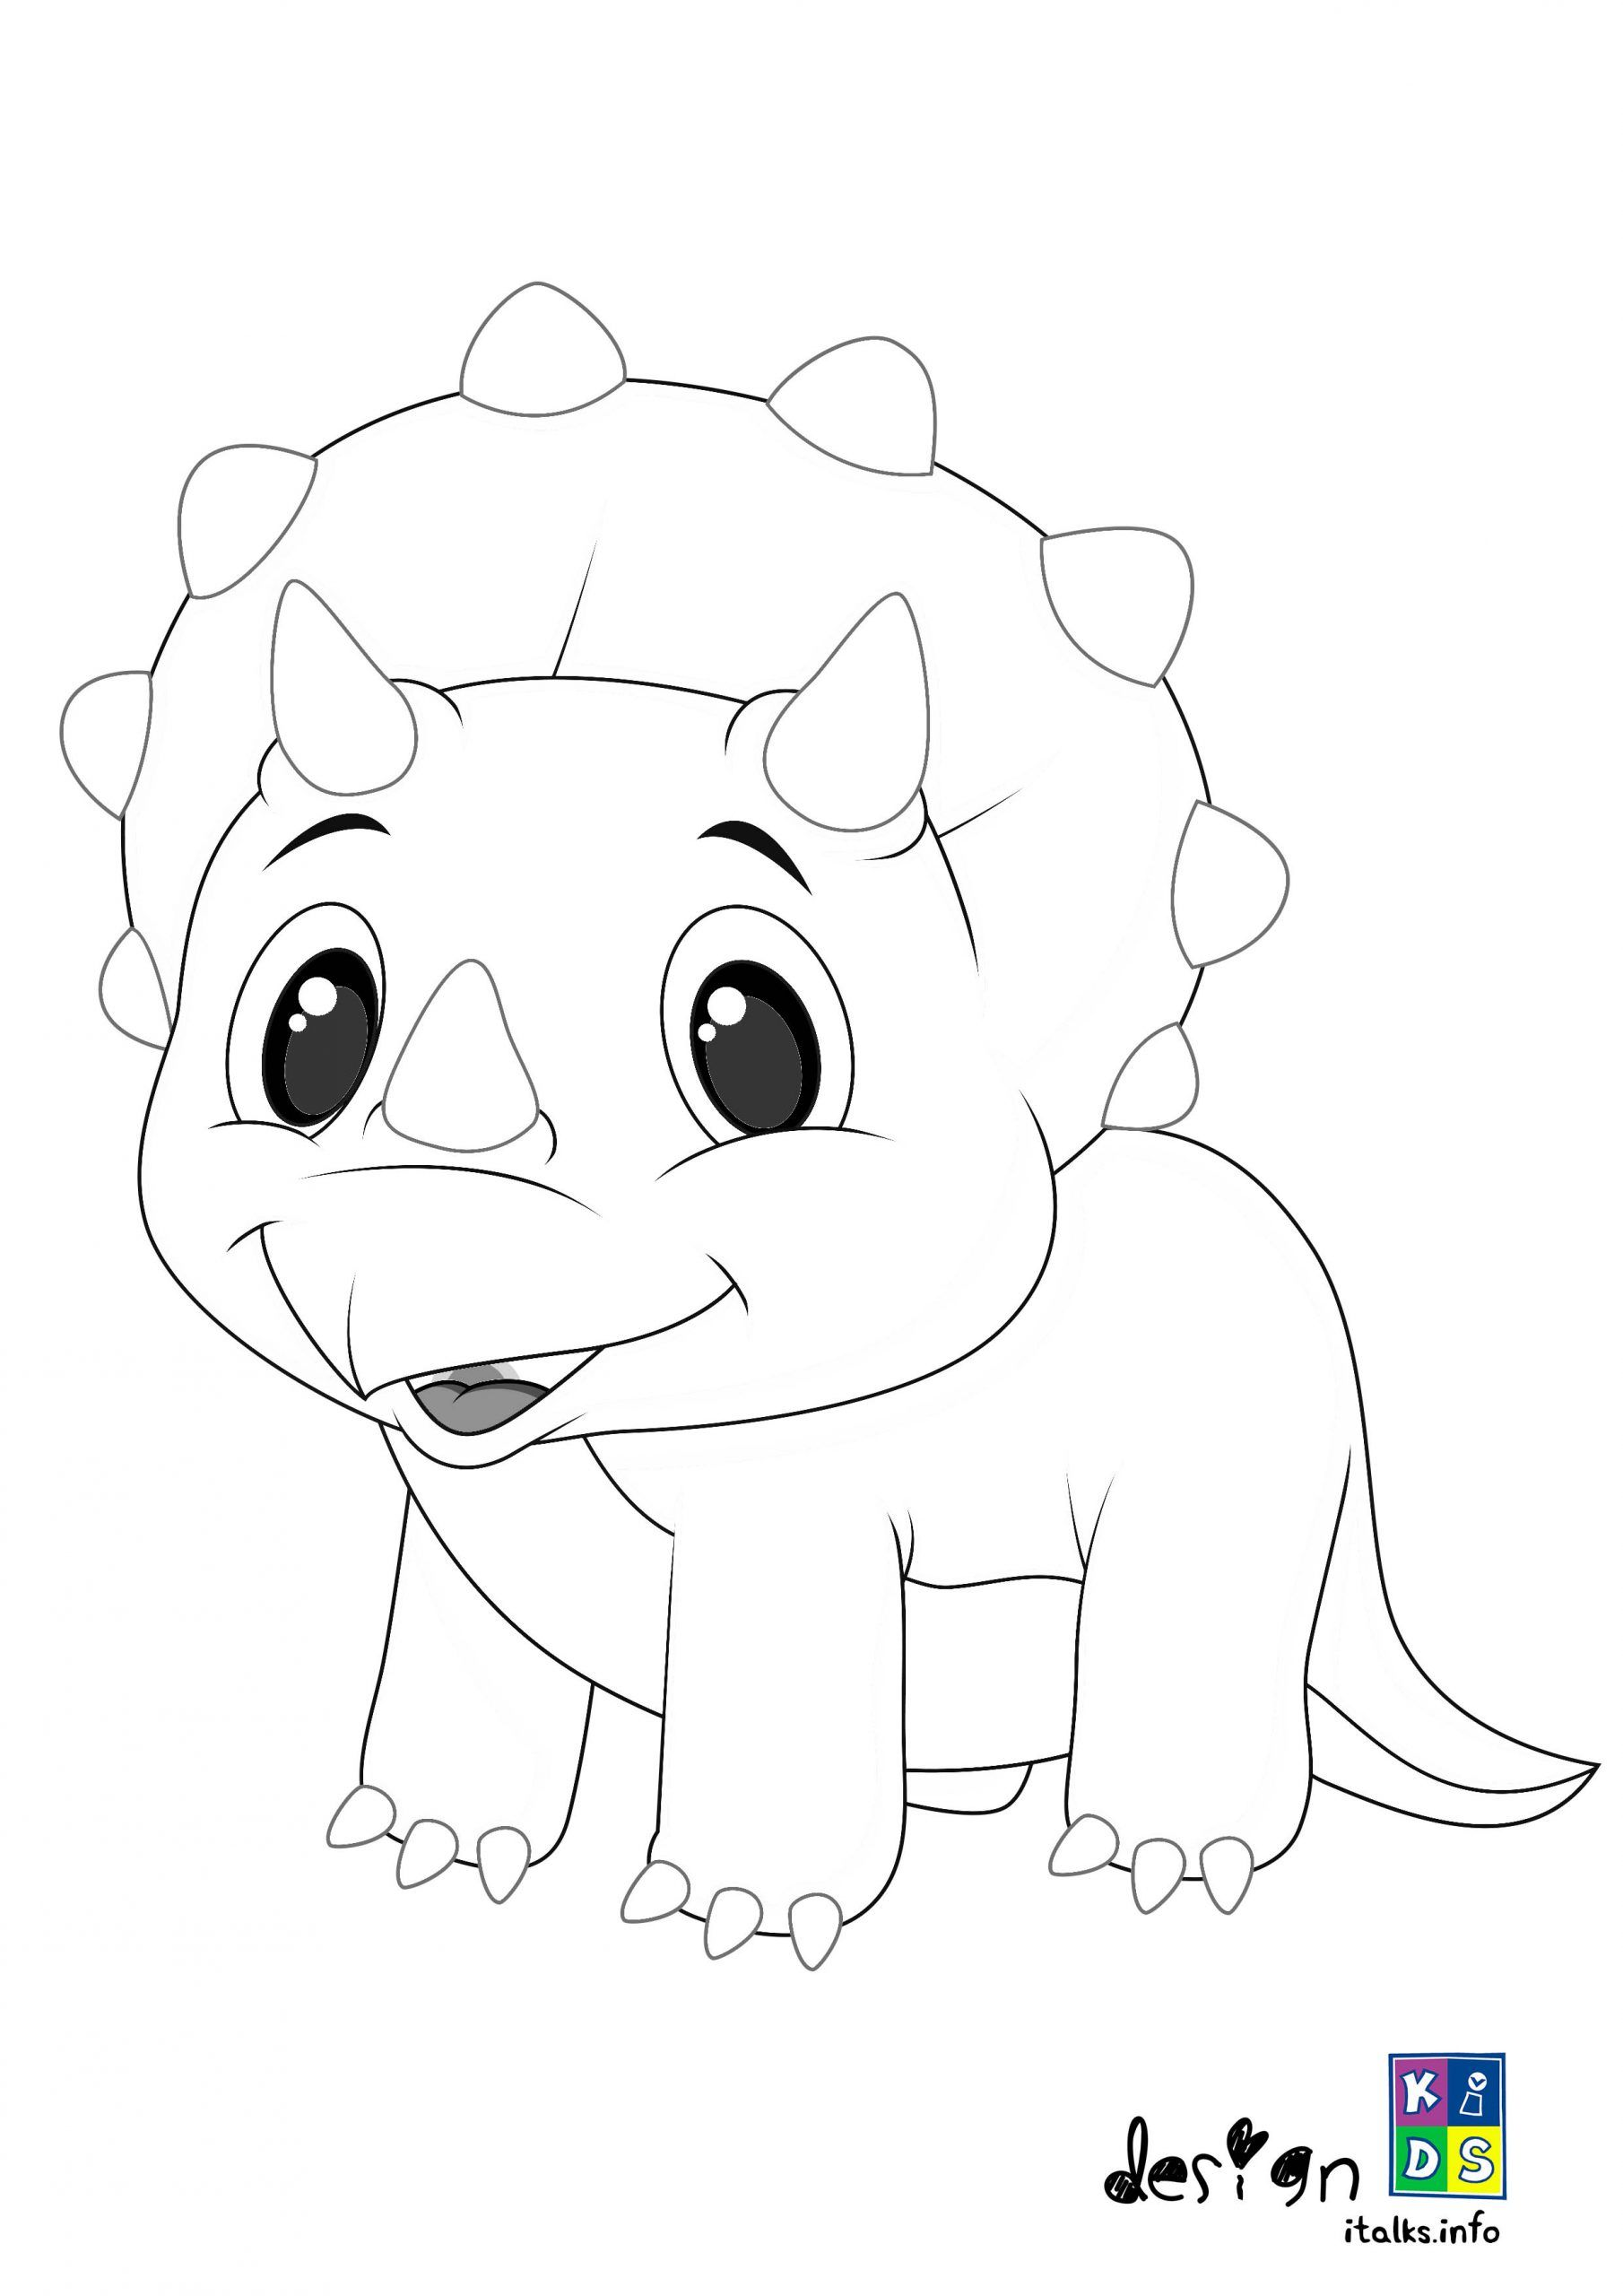 Cute Baby Triceratops Coloring Page Special For Kids Coloring Pages Free Coloring Pages Free Printable Coloring Pages